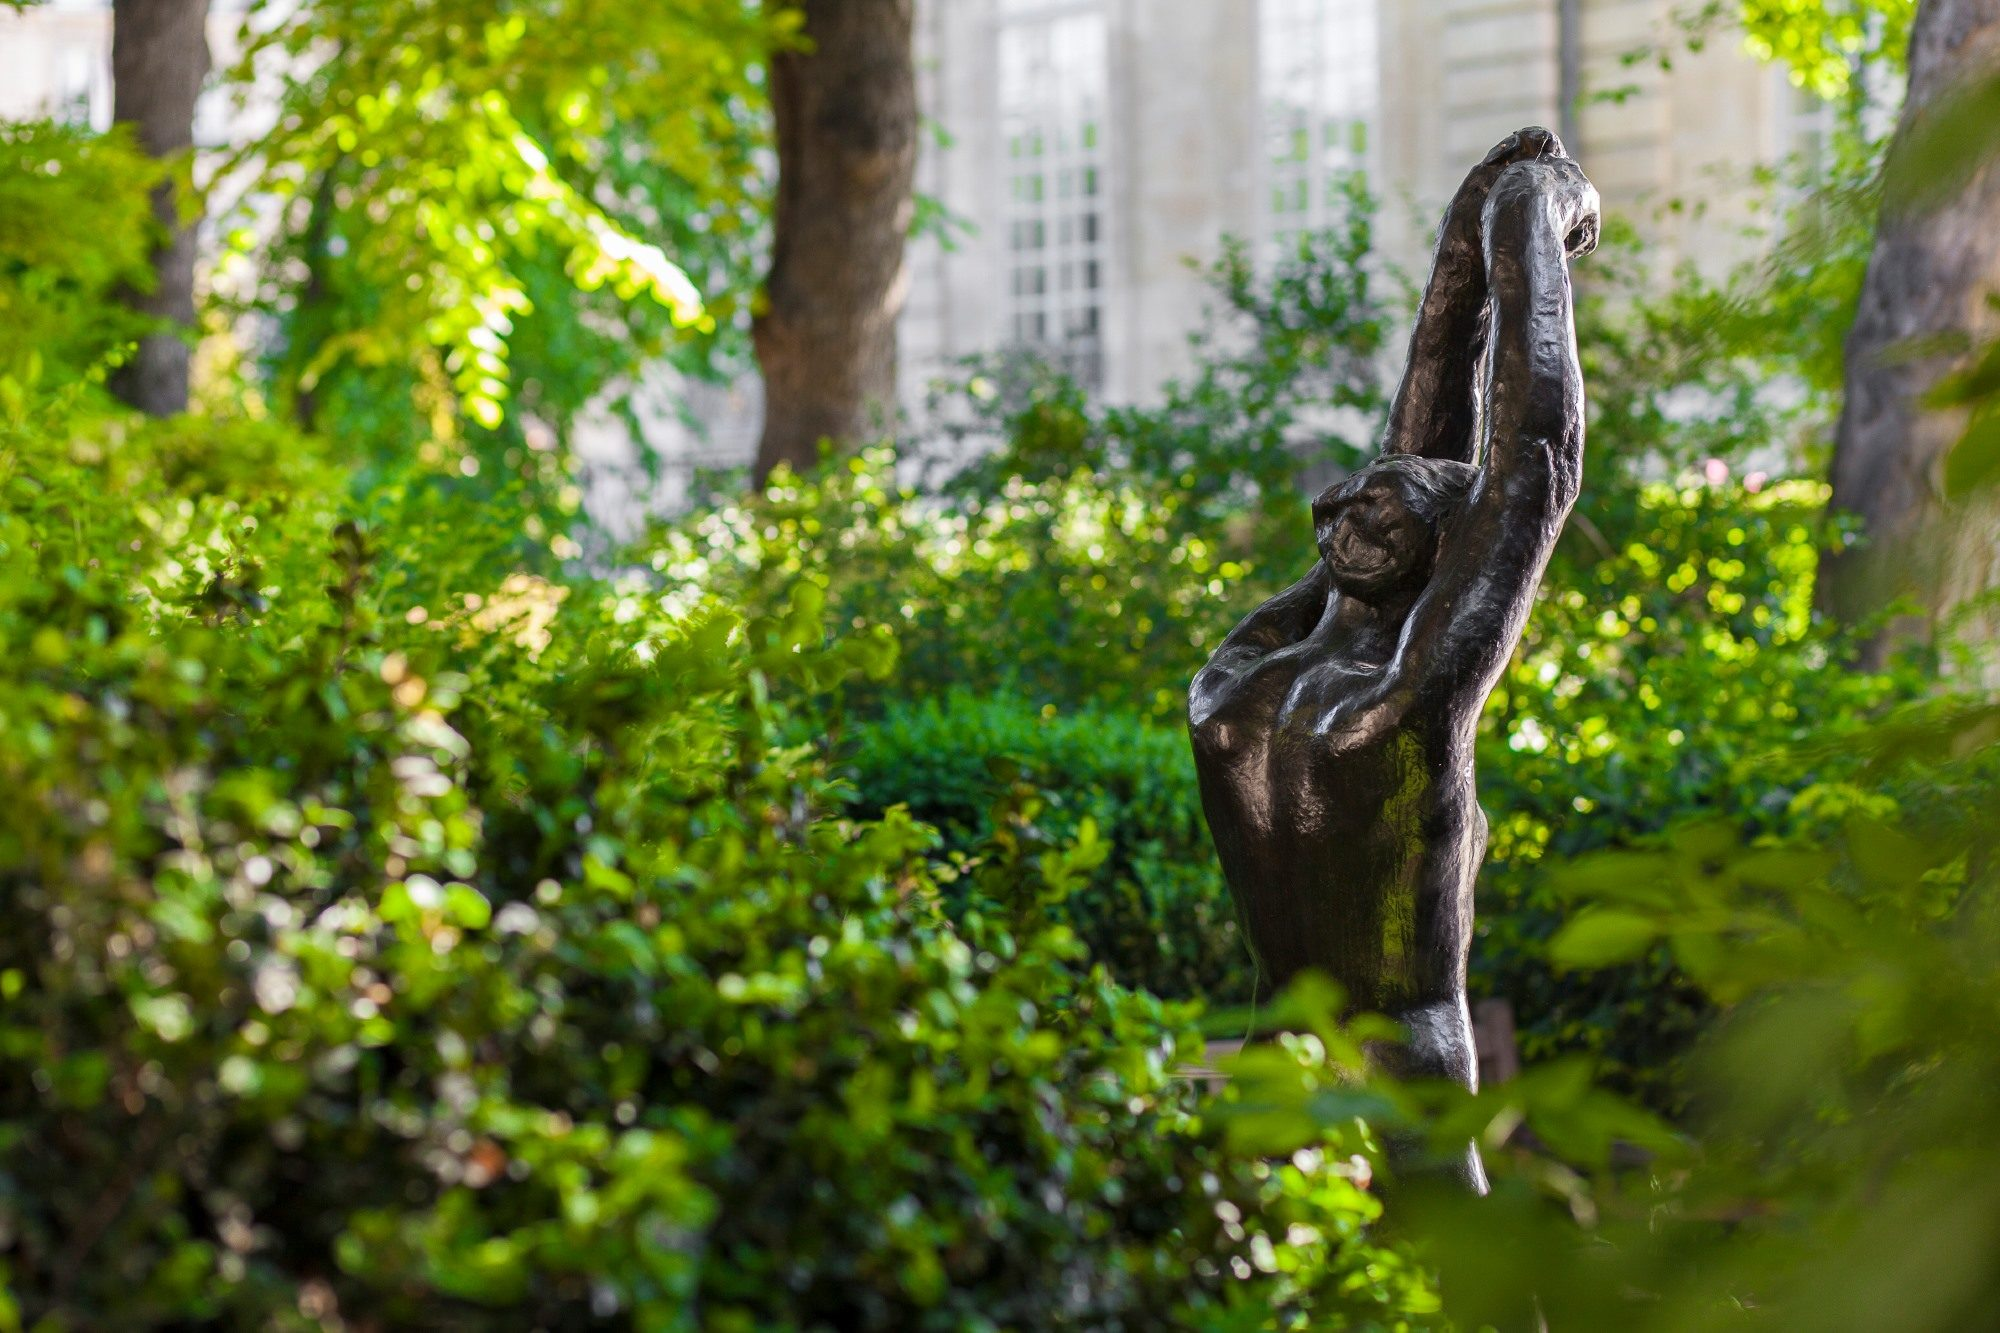 The Rodin Museum gardens with a sculpture of a woman her arms up among the foliage (right).